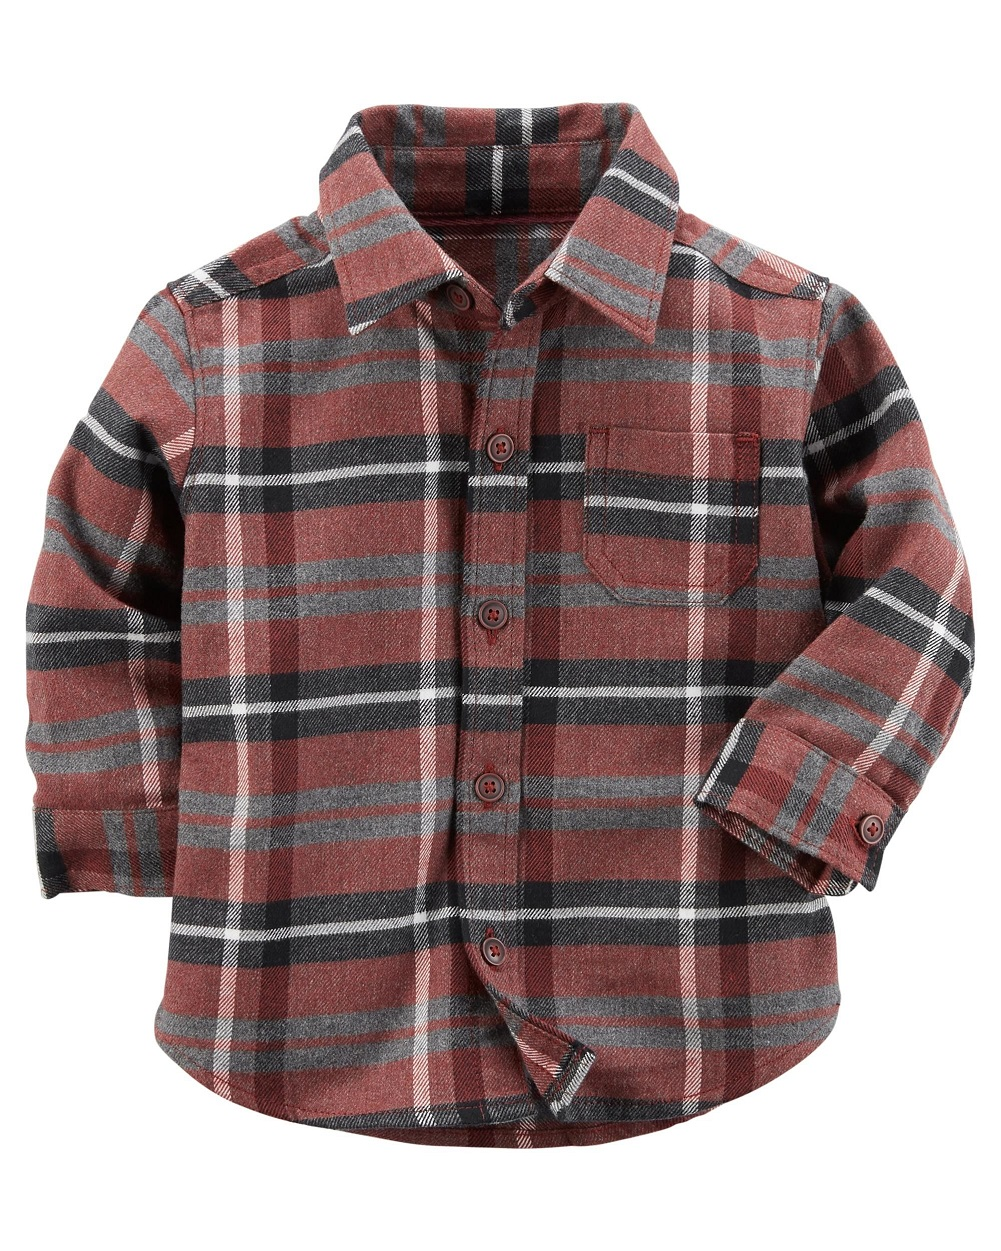 Carter's Baby Boys' Plaid Button-Front Shirt, Brown, 6 Months